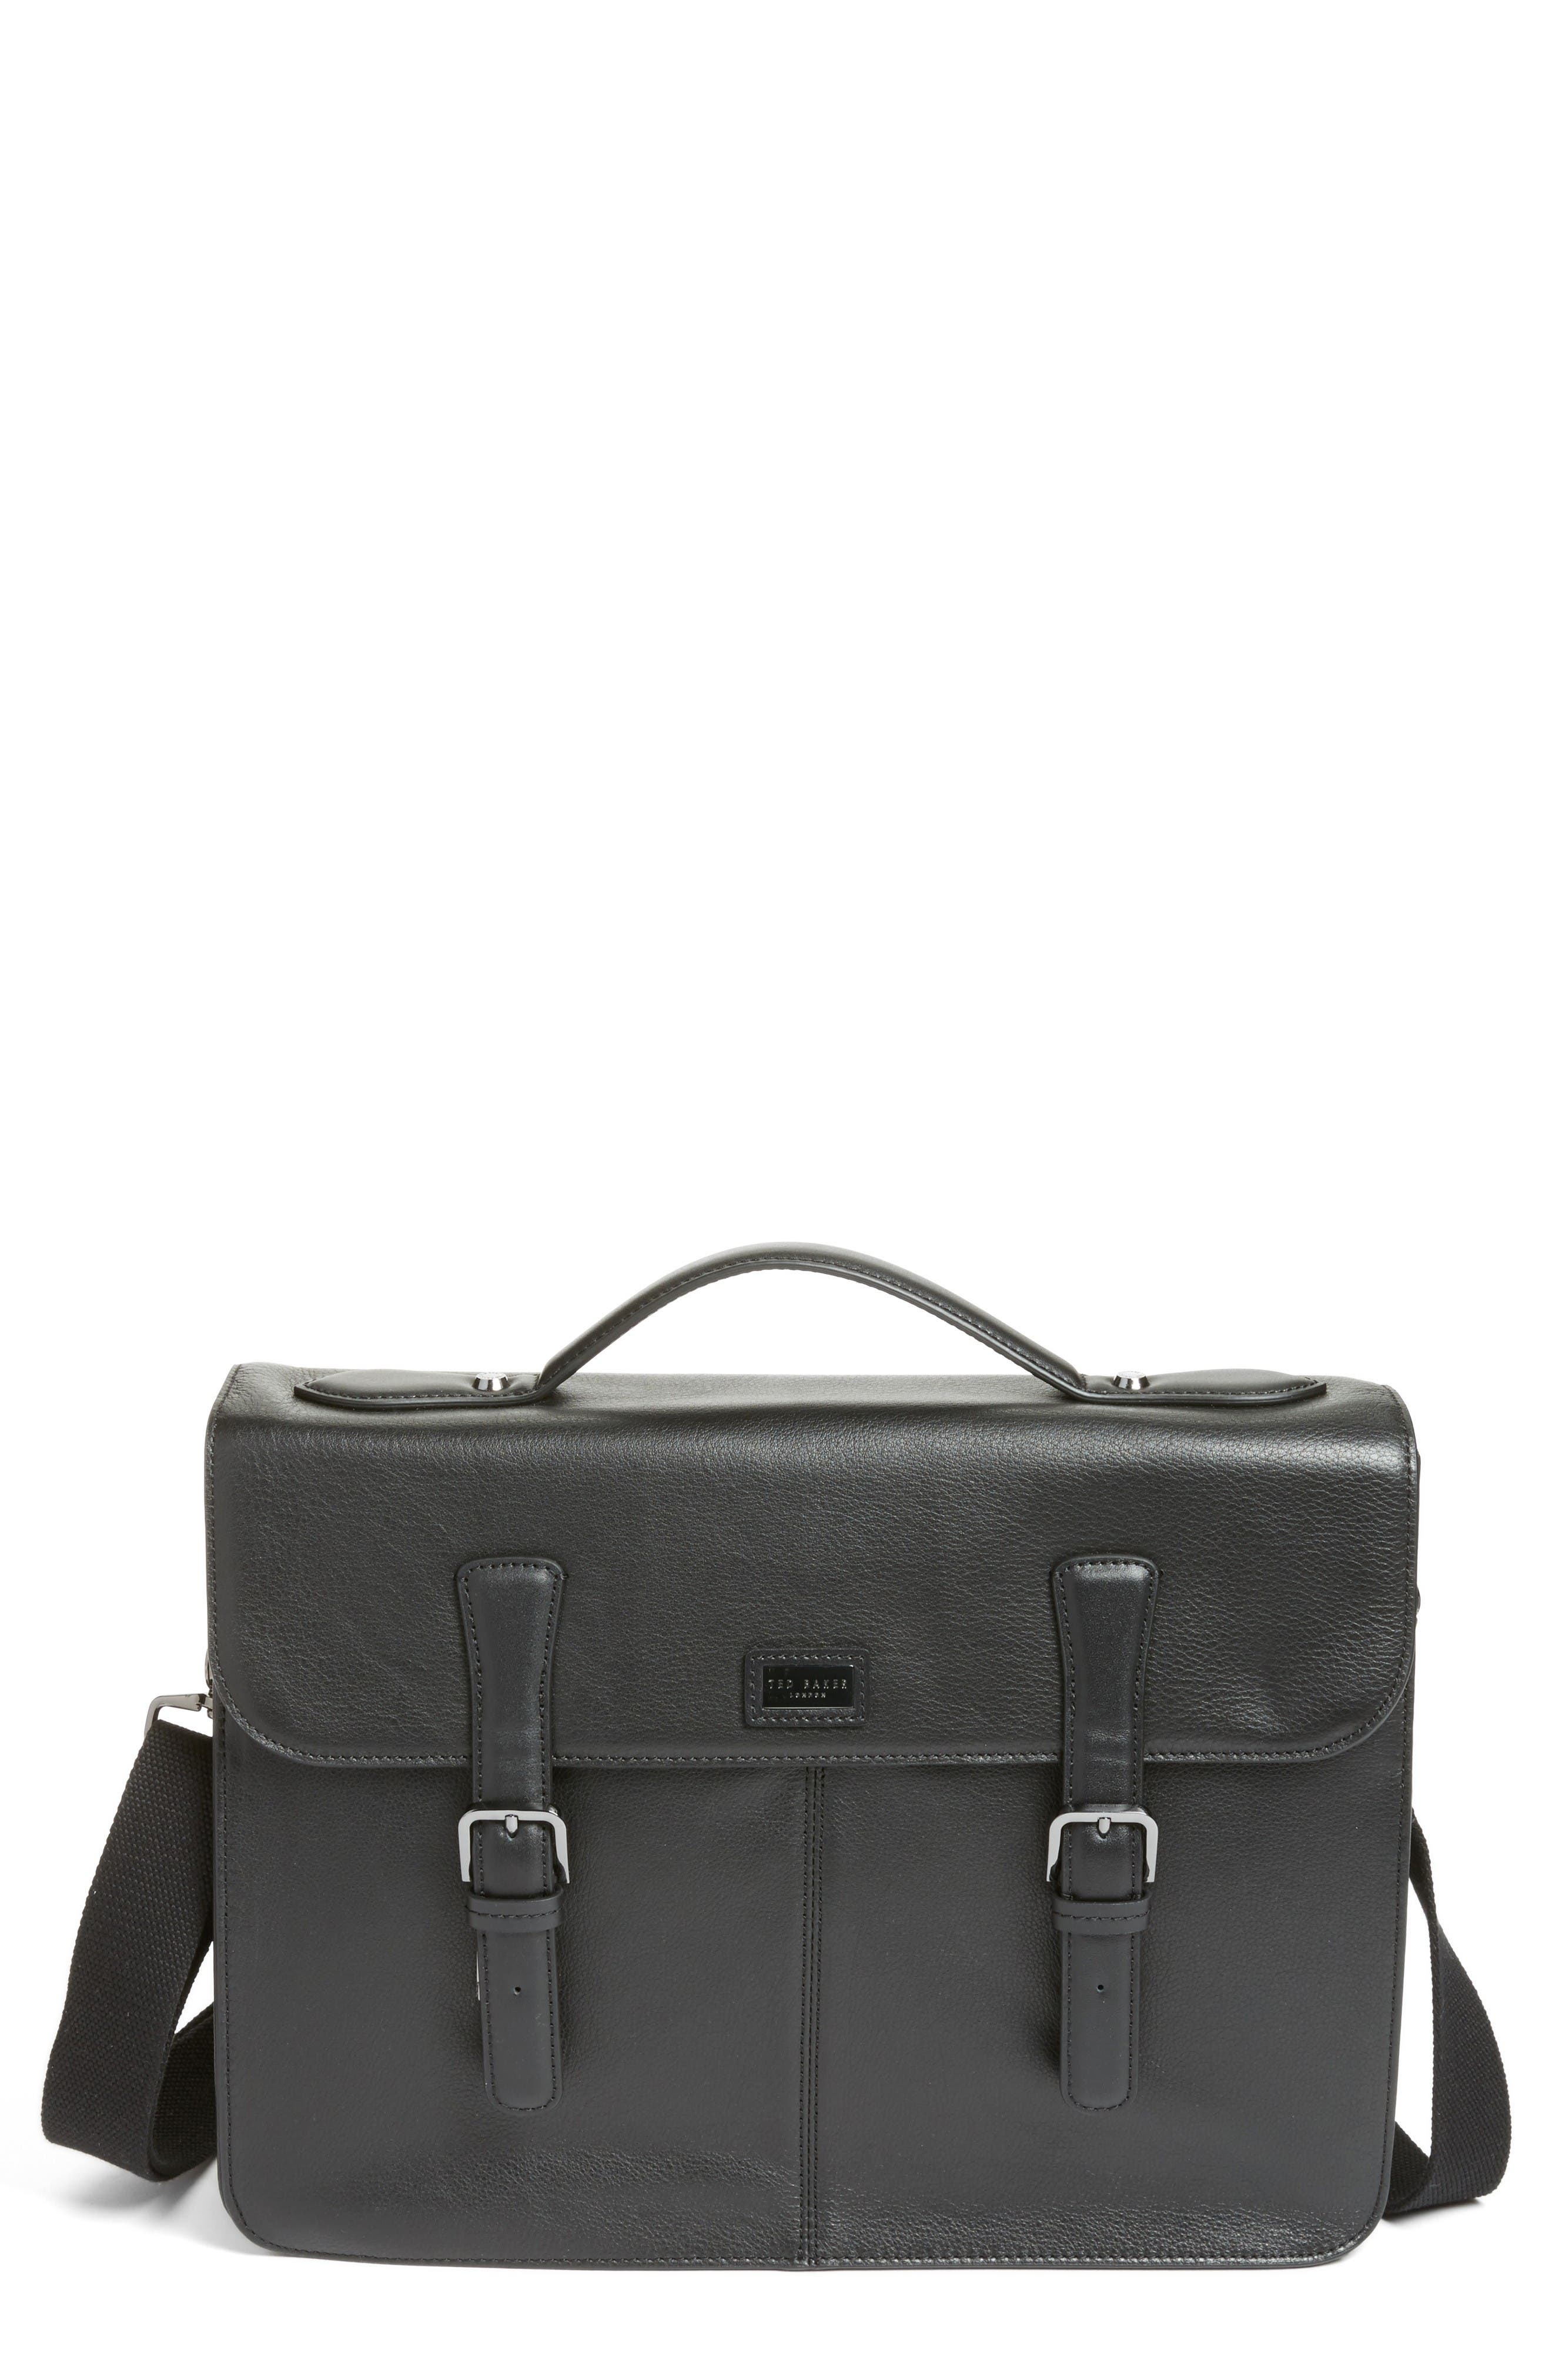 Main Image - Ted Baker London Bengal Leather Satchel